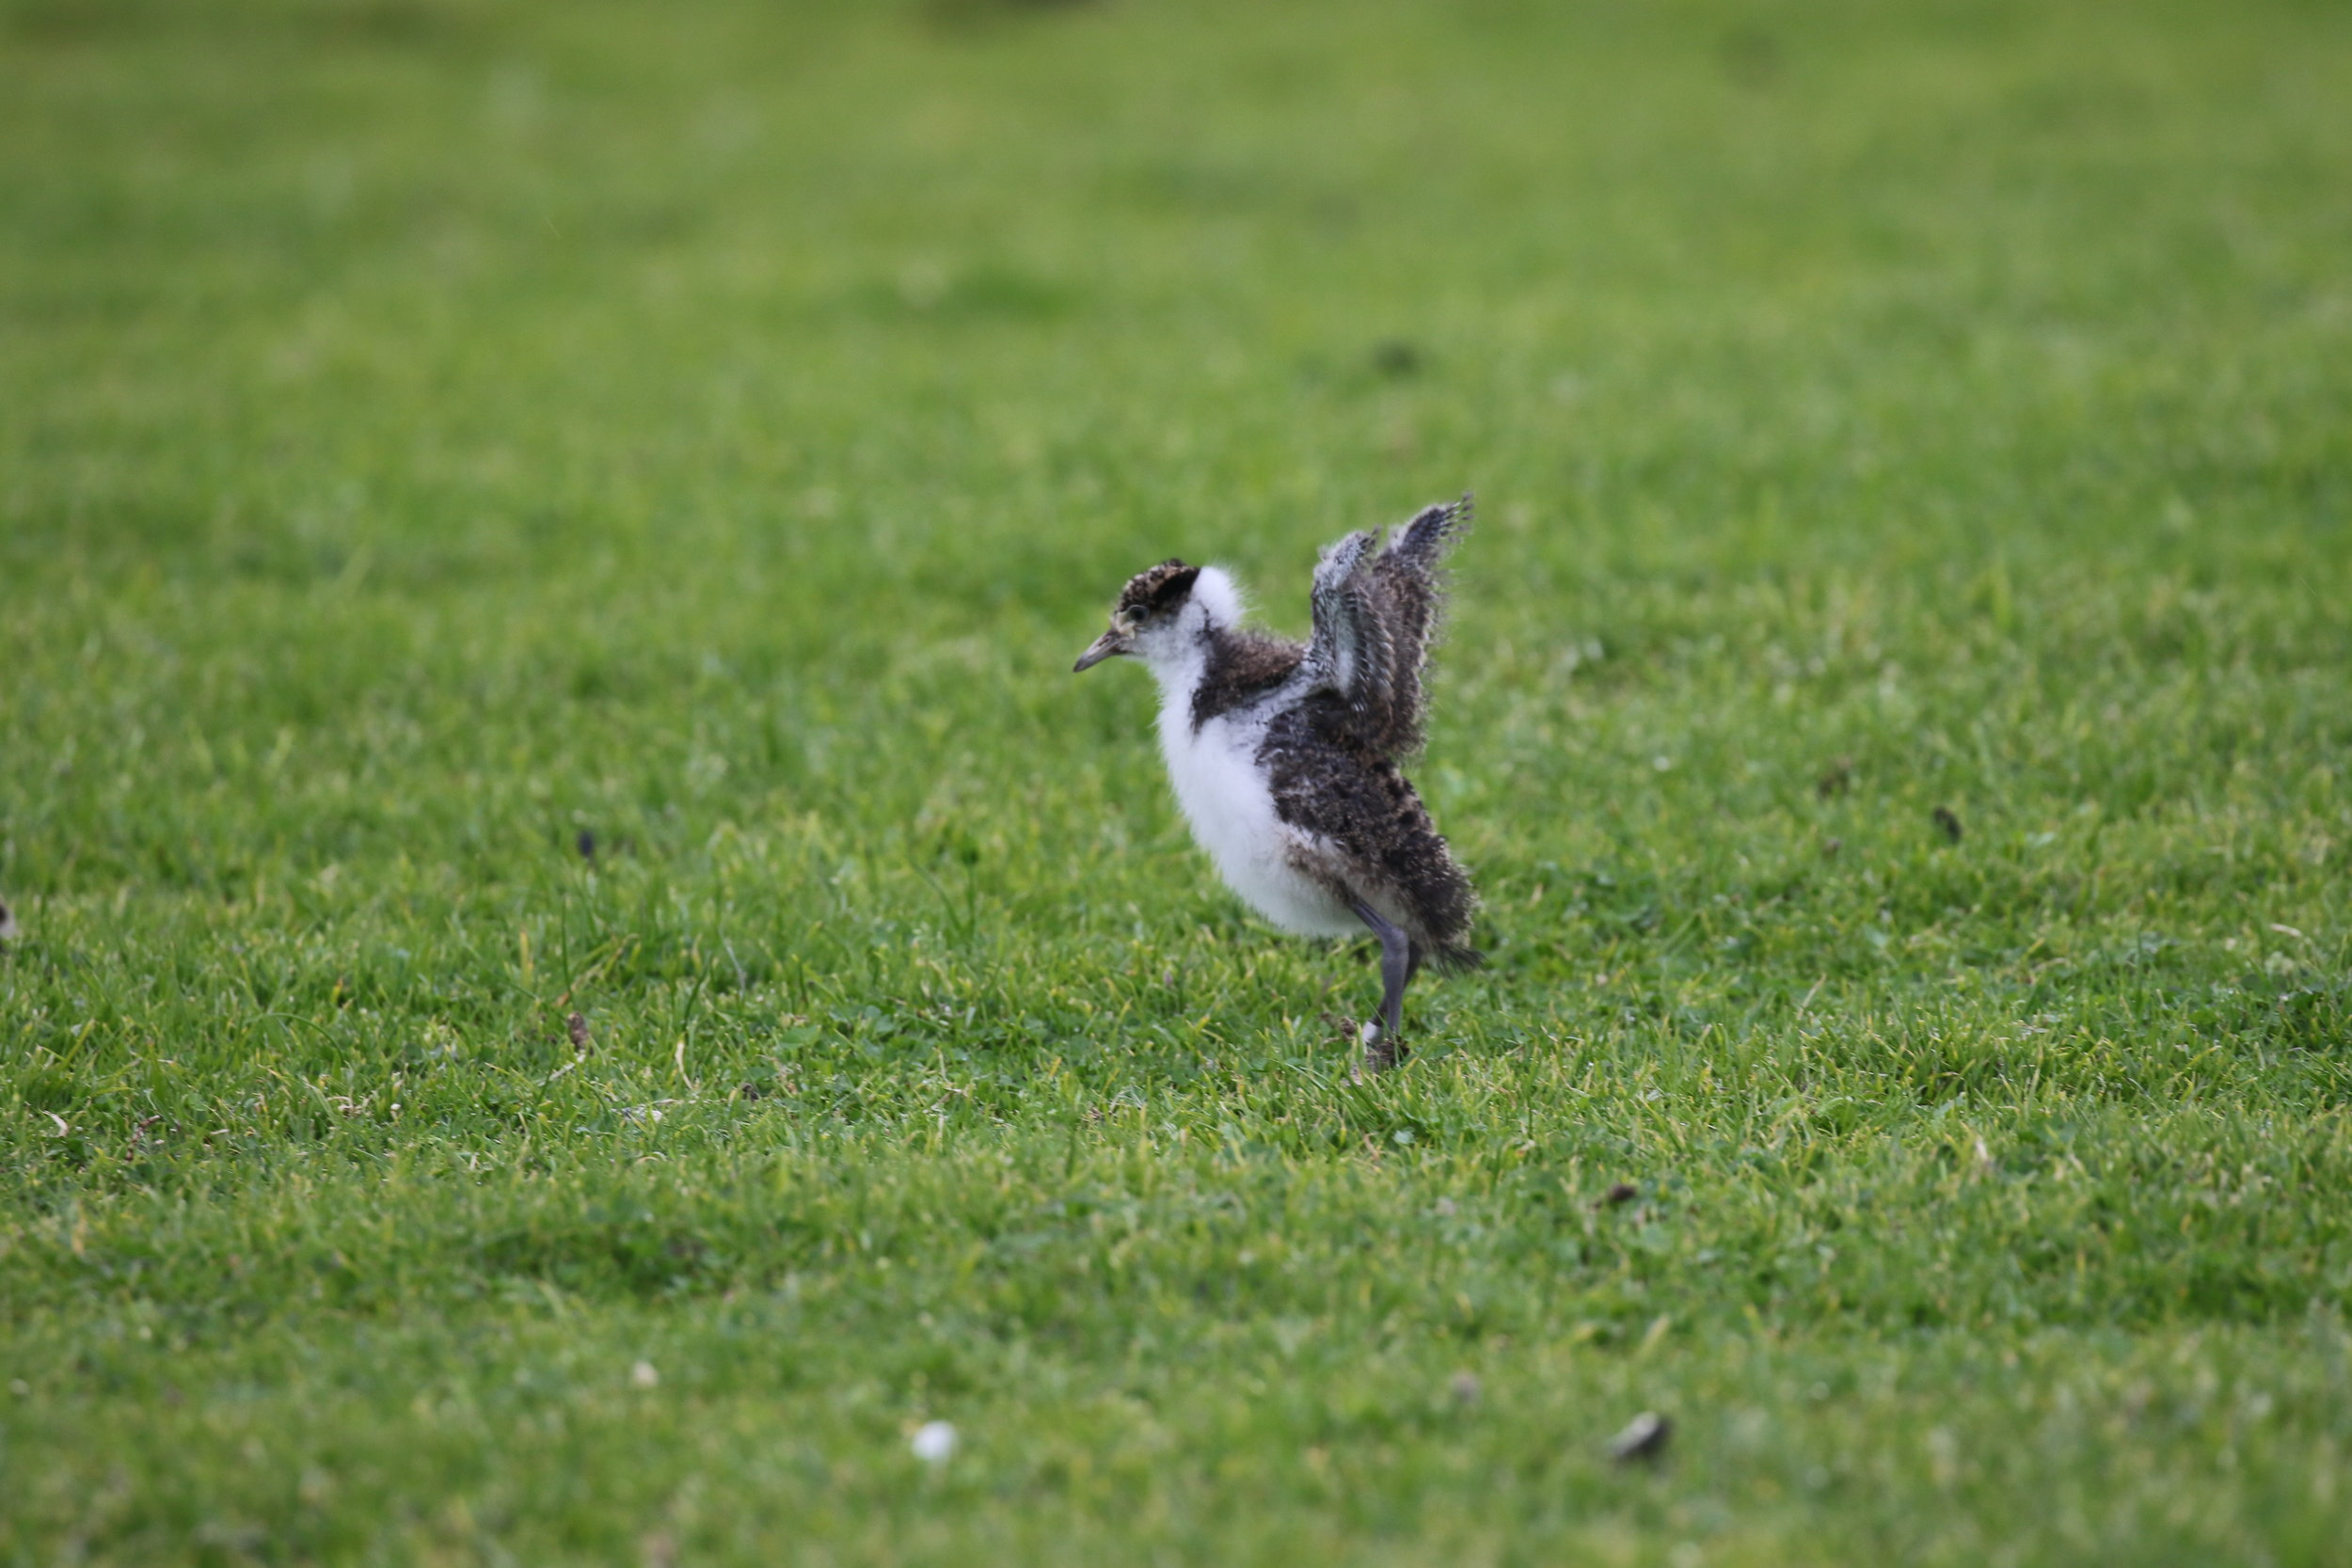 For a number of weeks after hatching, young birds such as this juvenile masked lapwing are unable to fly. This makes them vulnerable to predators and dependent on their parents to provide protection. Image: Rowan Mott